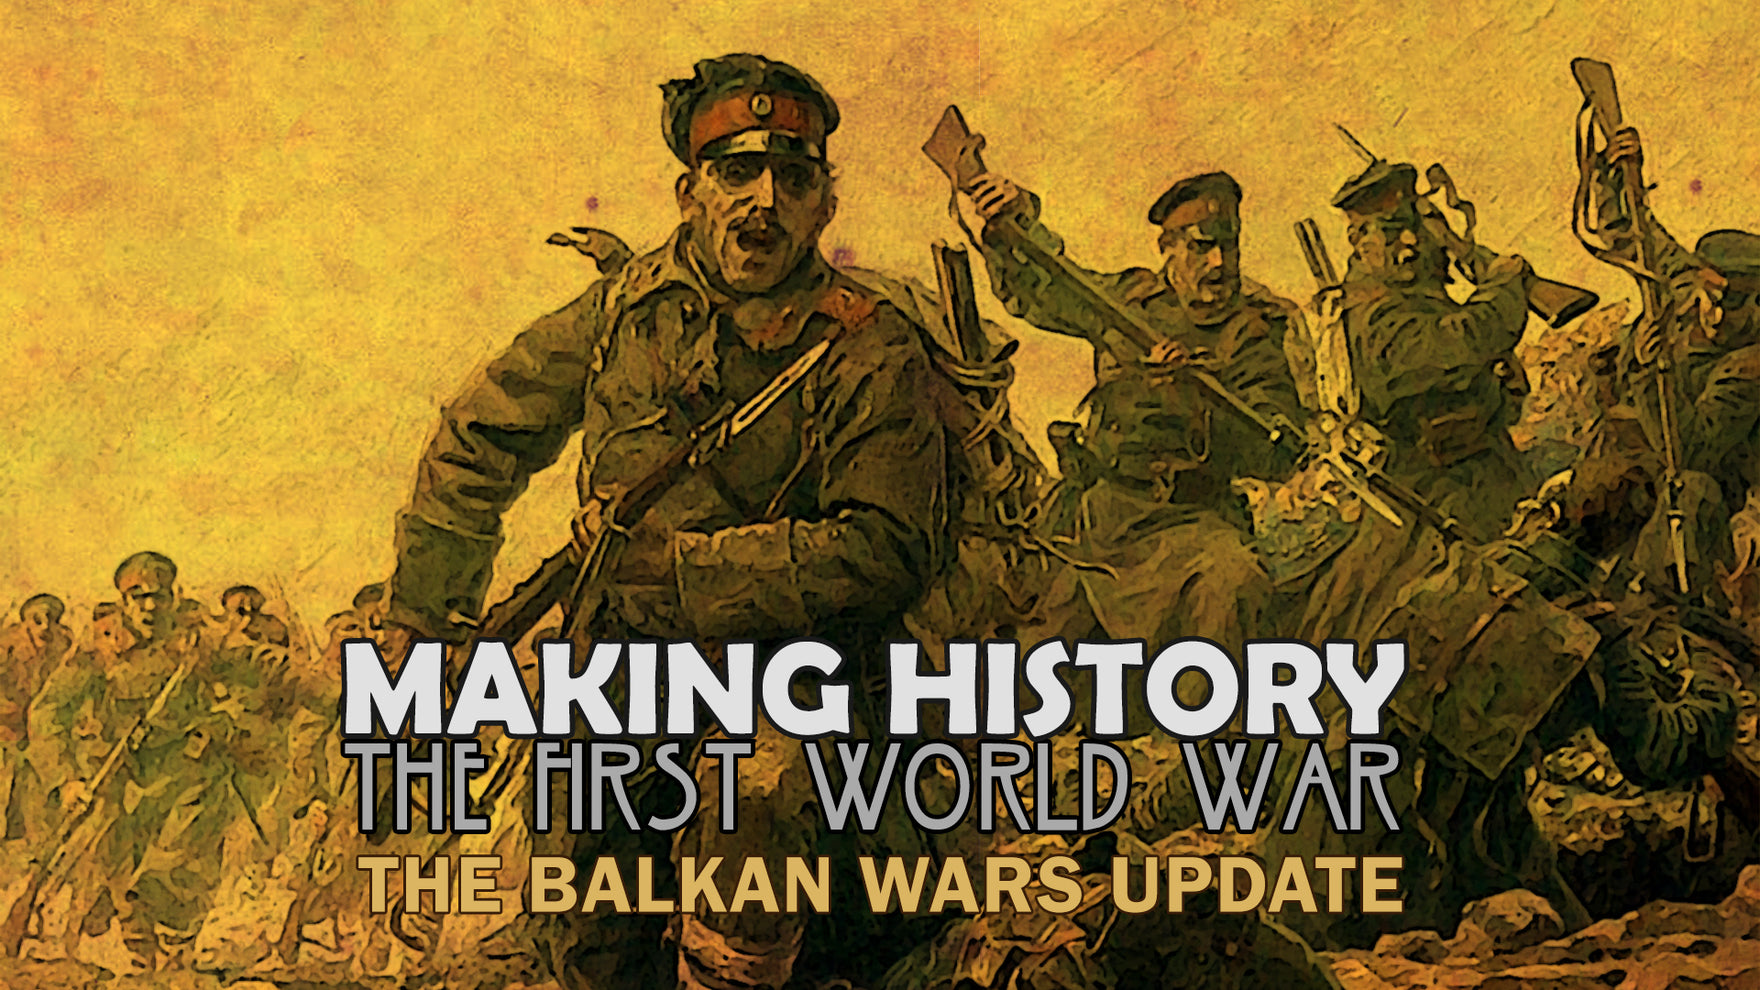 Making History: The First World War - The Balkan Wars Update